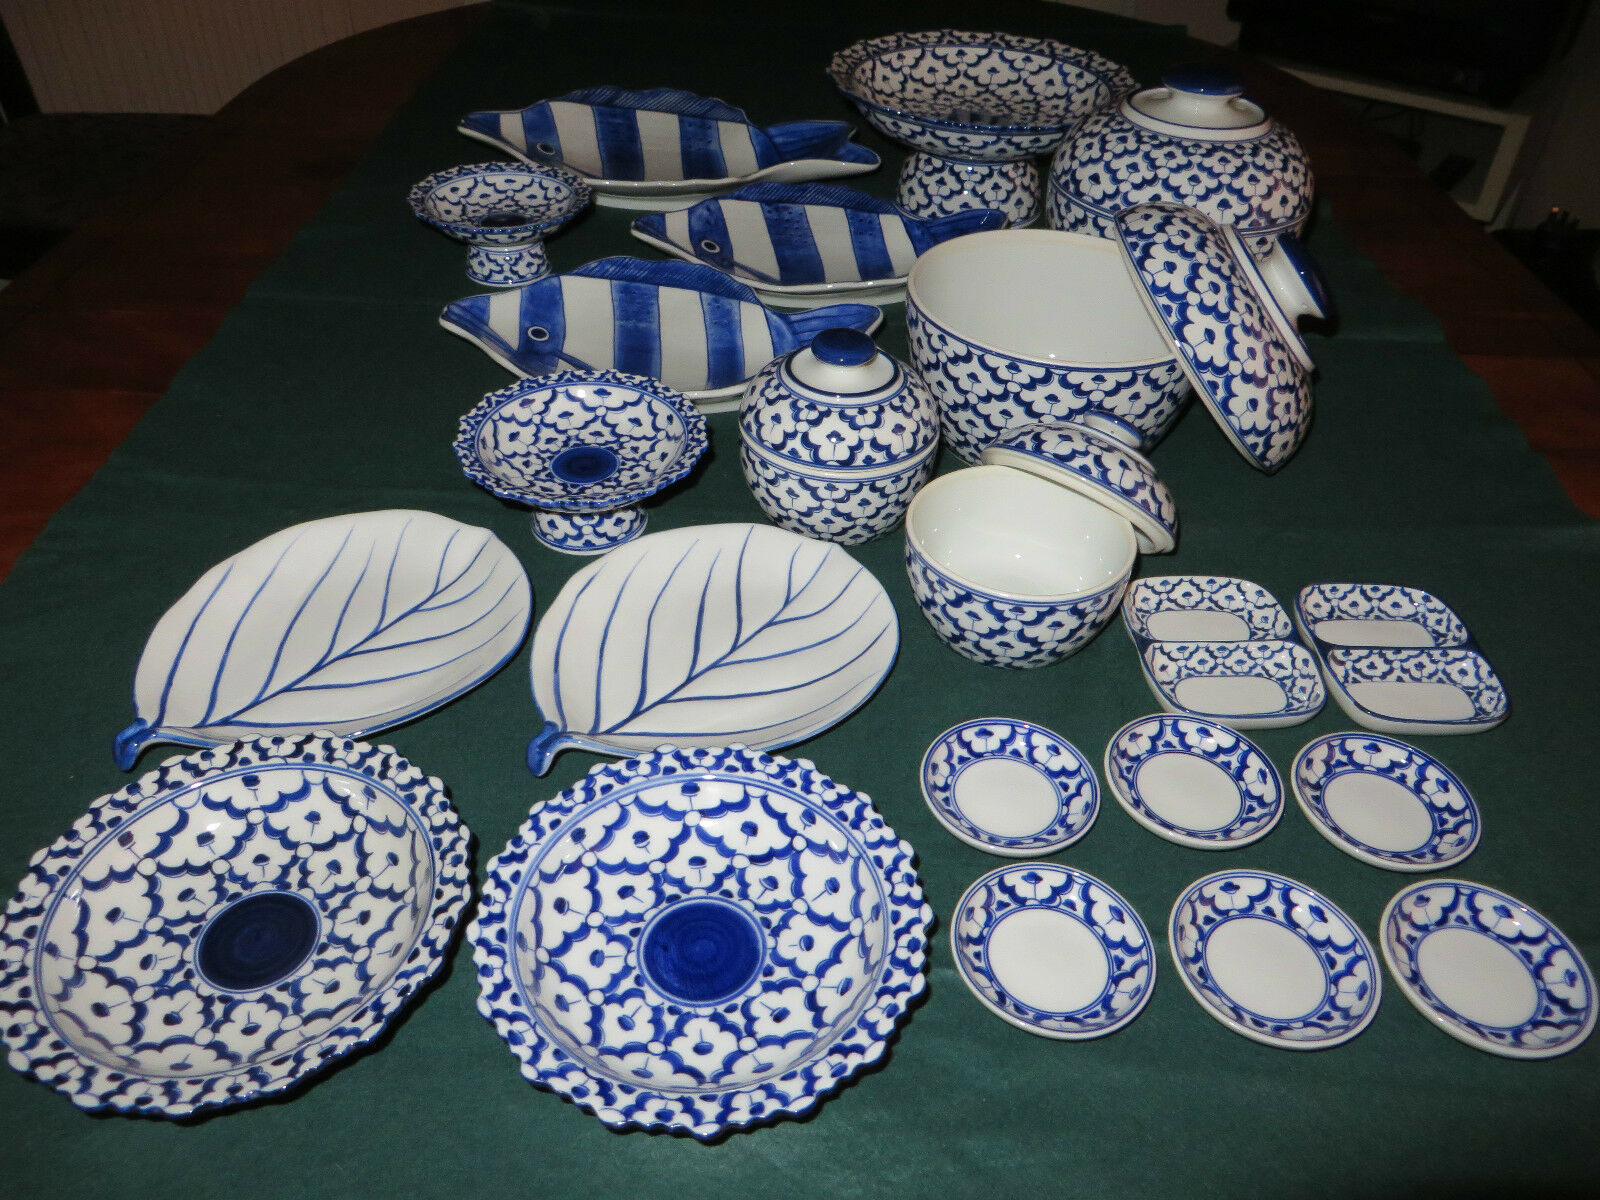 NEW - 22 pieces HANDPAINTED Thai bluee and White Serving Dishes Bowls